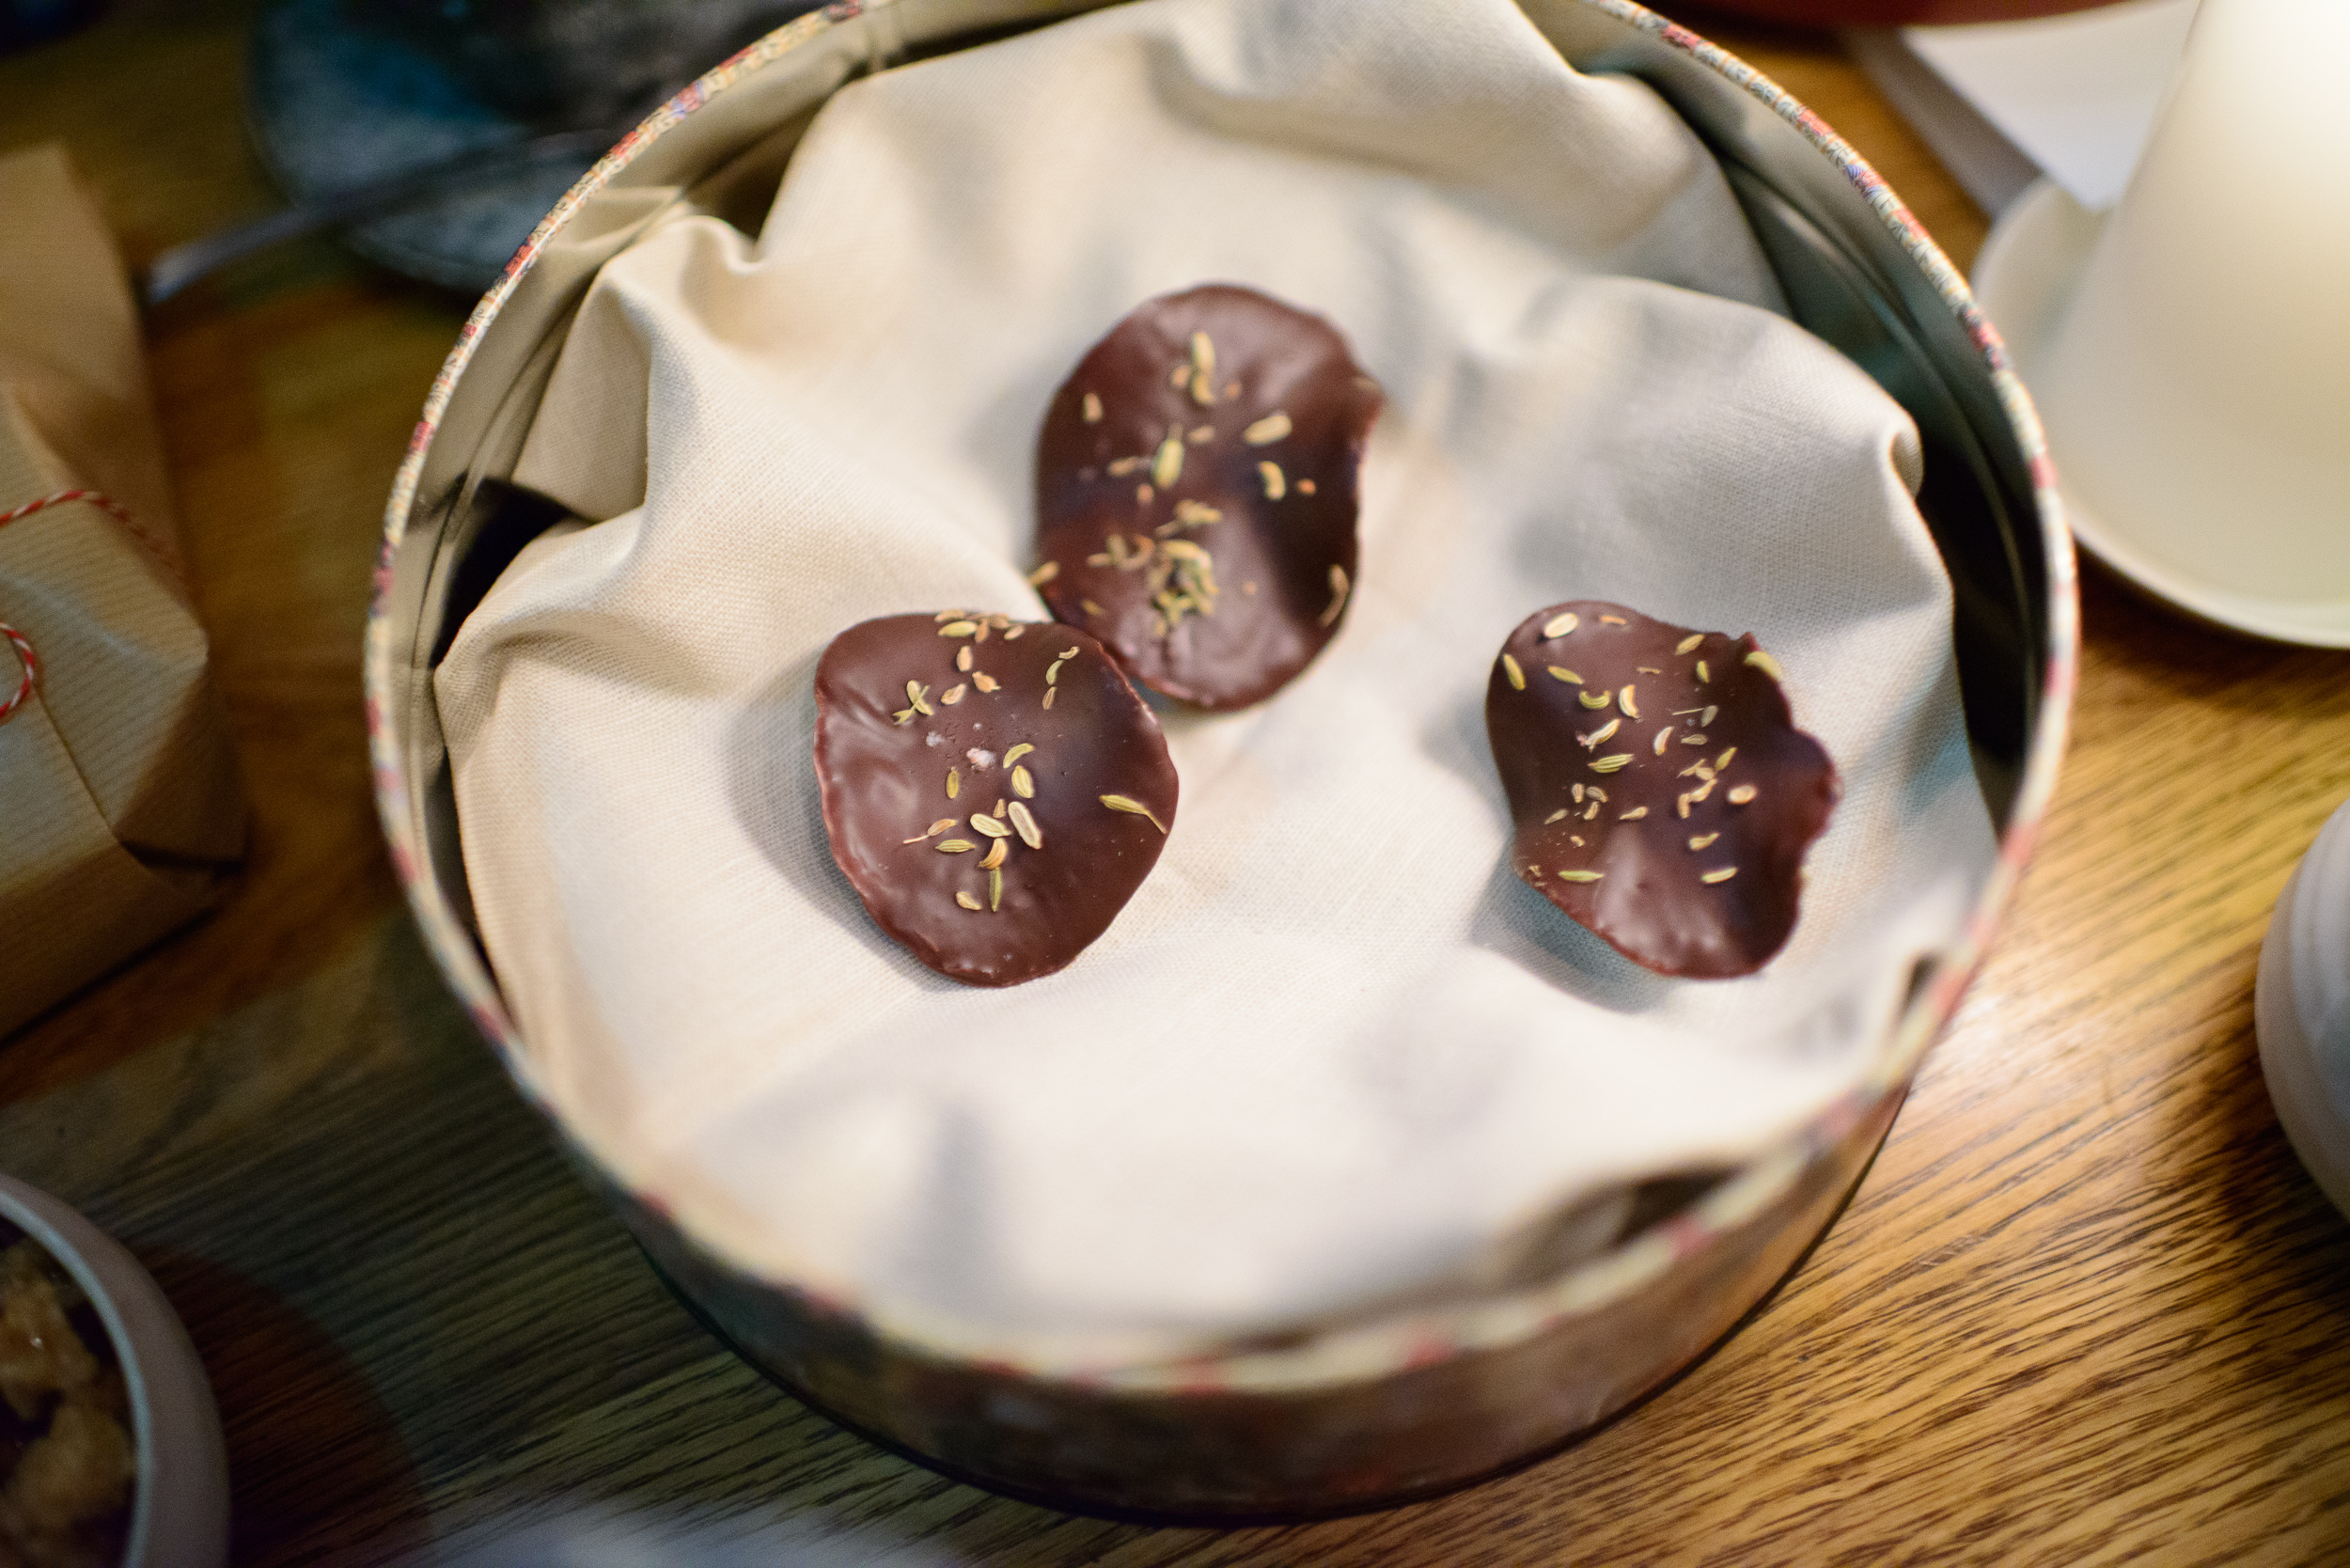 31st Course: Chocolate with Caraway Seeds